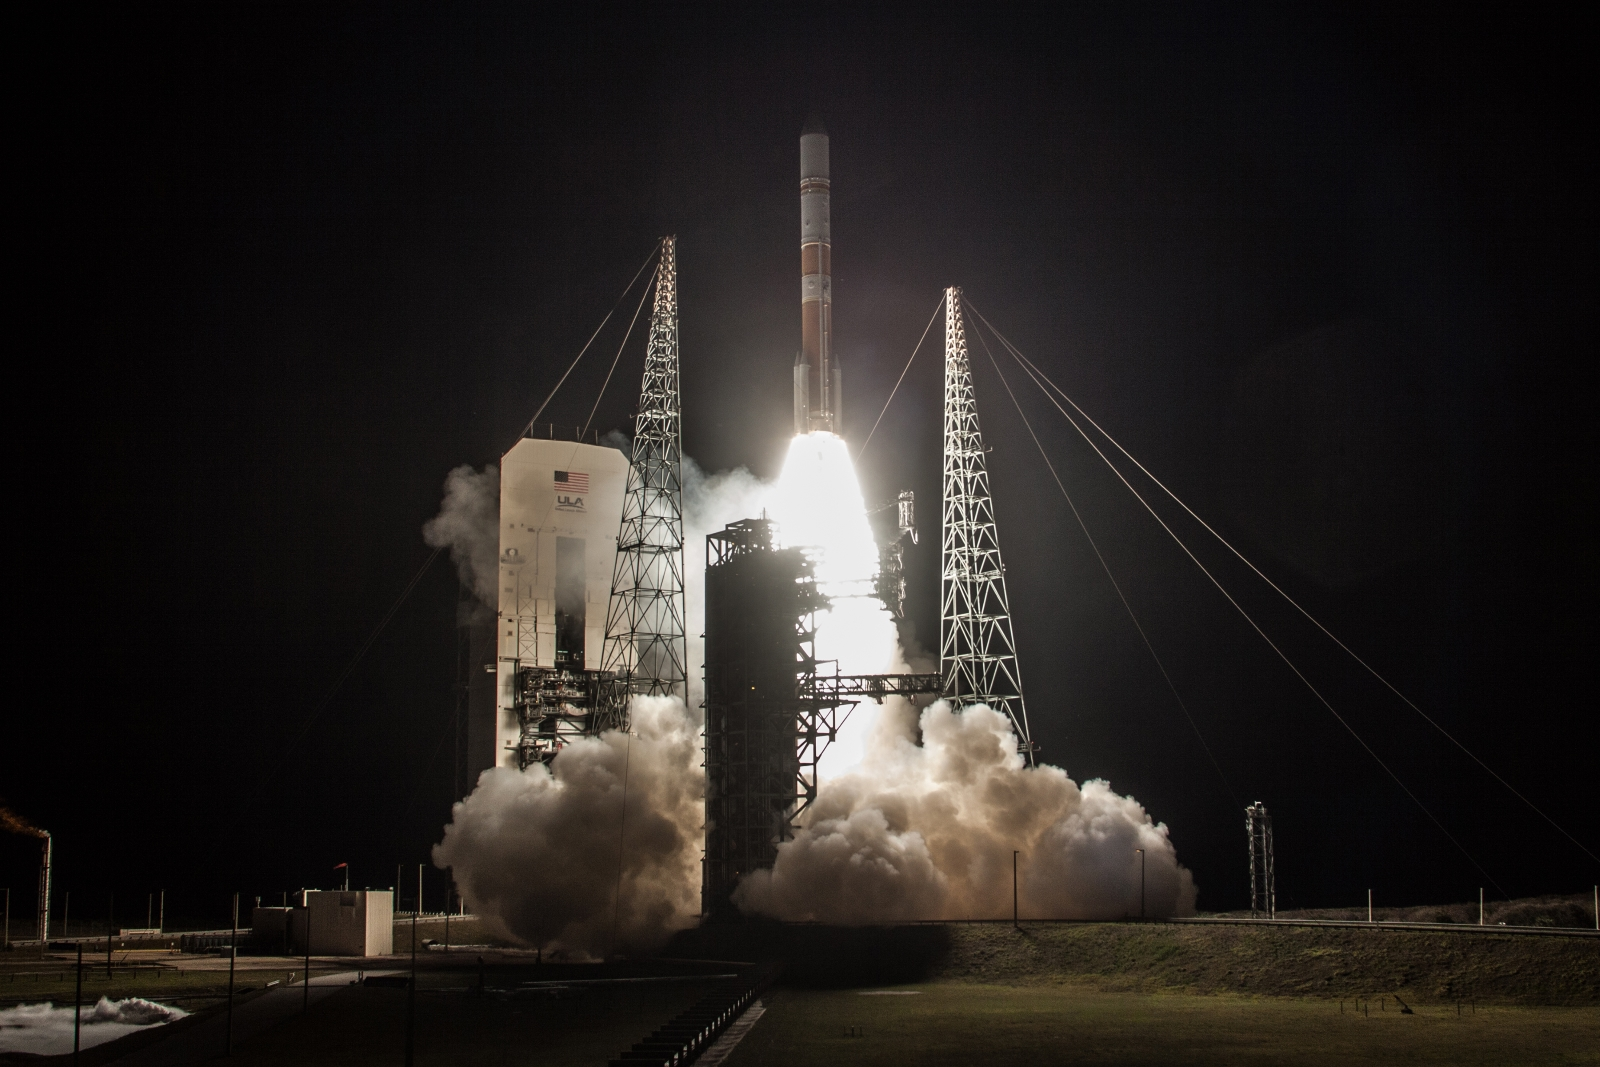 A Delta IV rocket lifts off from Space Launch Complex-37 with the a U.S. Air Force payload. Photo Credit: ULA